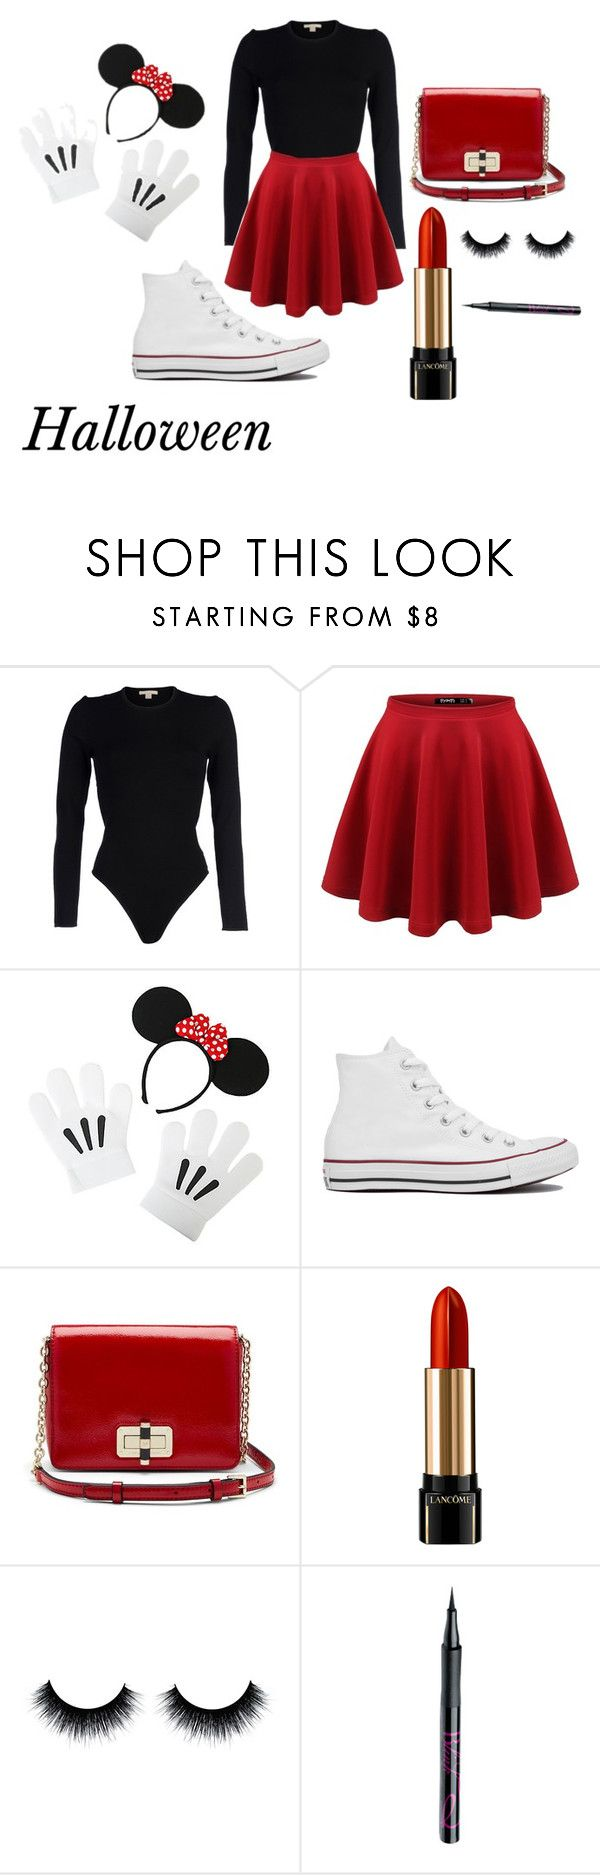 """""""Minnie Mouse Halloween Costume"""" by deshae27 ❤ liked on Polyvore featuring Michael Kors, Disney, Converse, Diane Von Furstenberg, Lancôme and Barry M"""